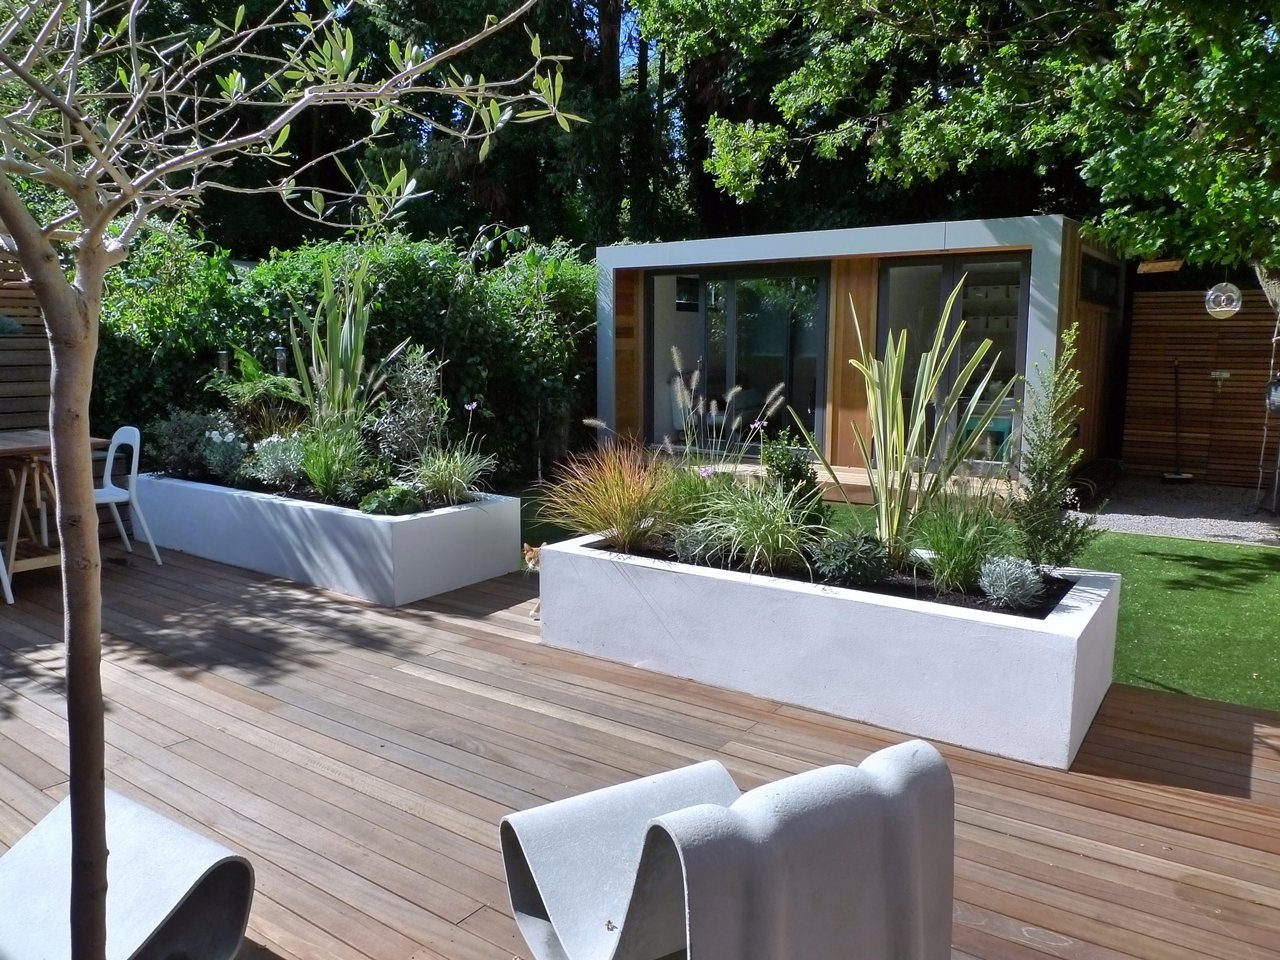 Contemporary garden design london modern home exteriors for Contemporary garden design ideas